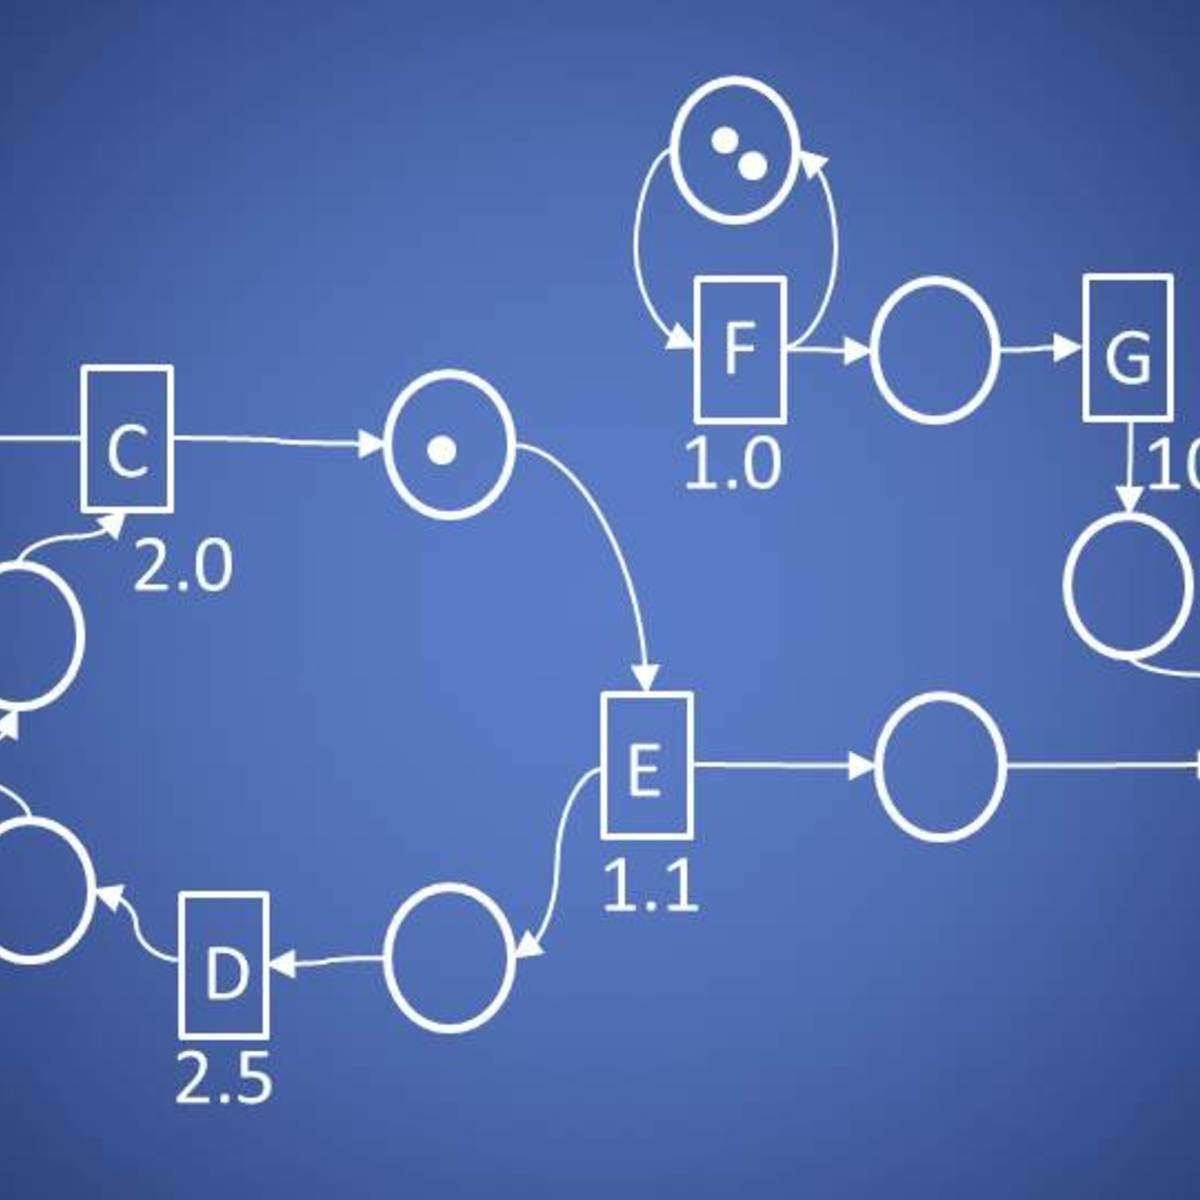 Embedded Systems Skill Primer Circuitdiagramtointerfaceuartwithpic16f877aprimer Course By Coursera